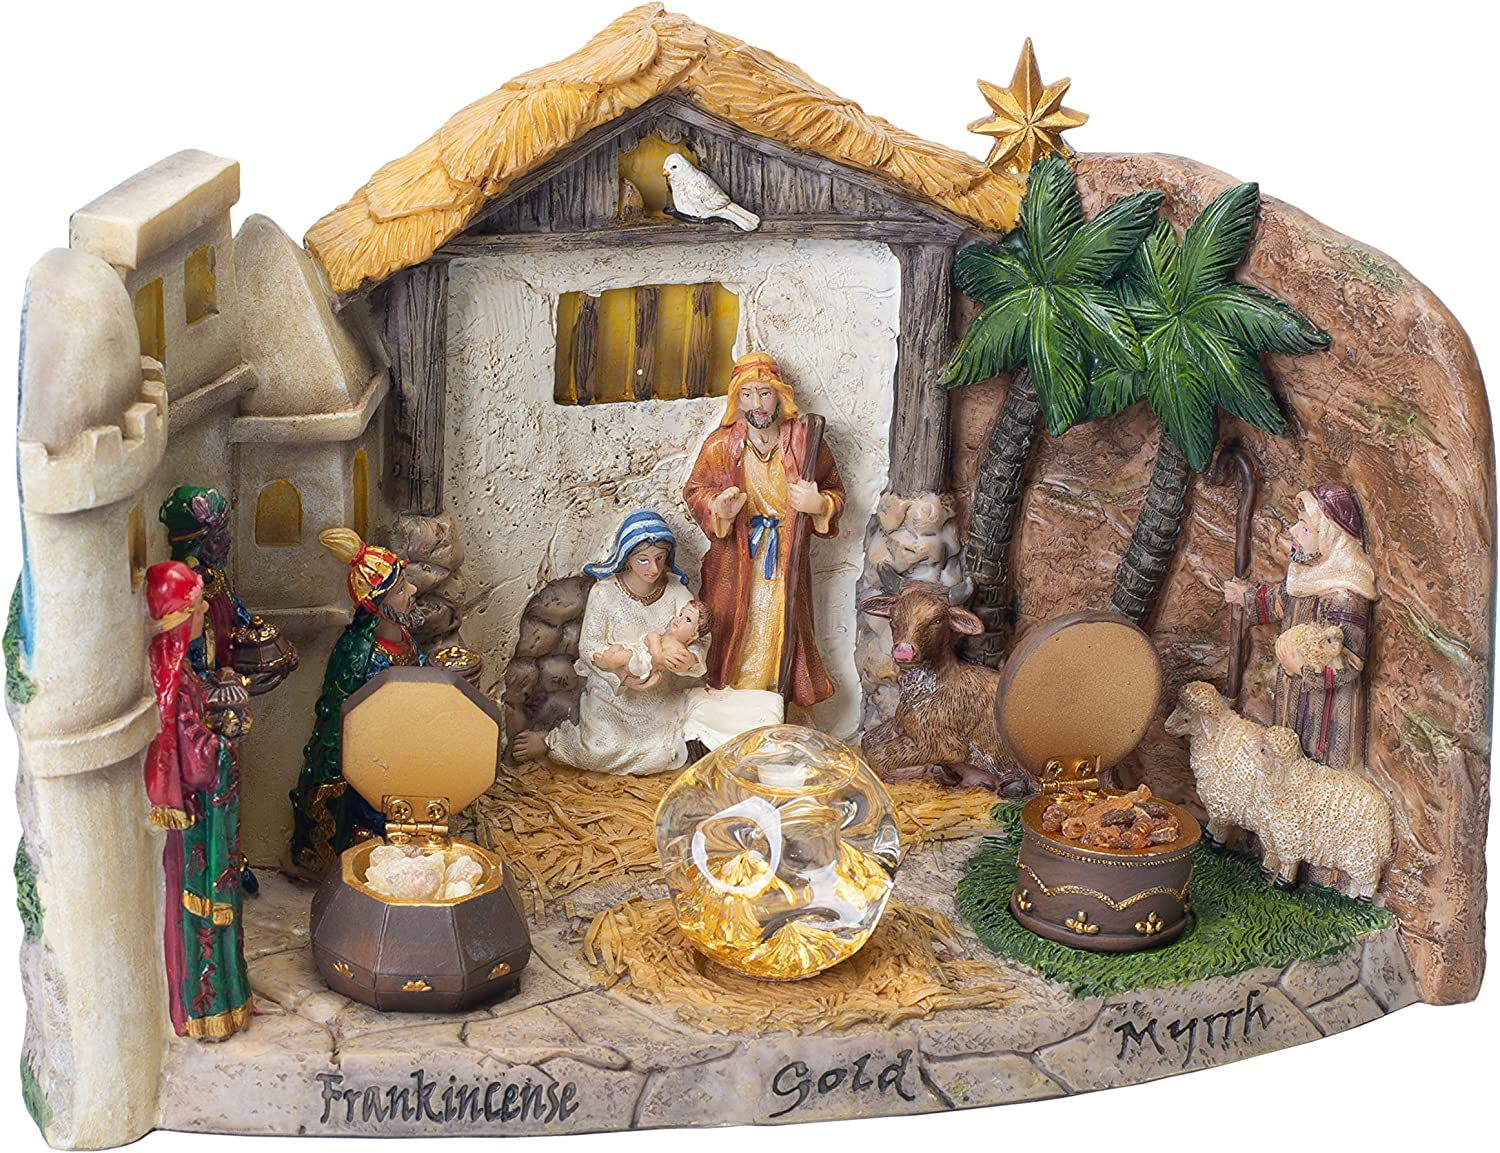 Three Kings Gifts The Original Gifts of Christmas Panorama Nativity Figurine Statue with Real Gold, Frankincense and Myrrh